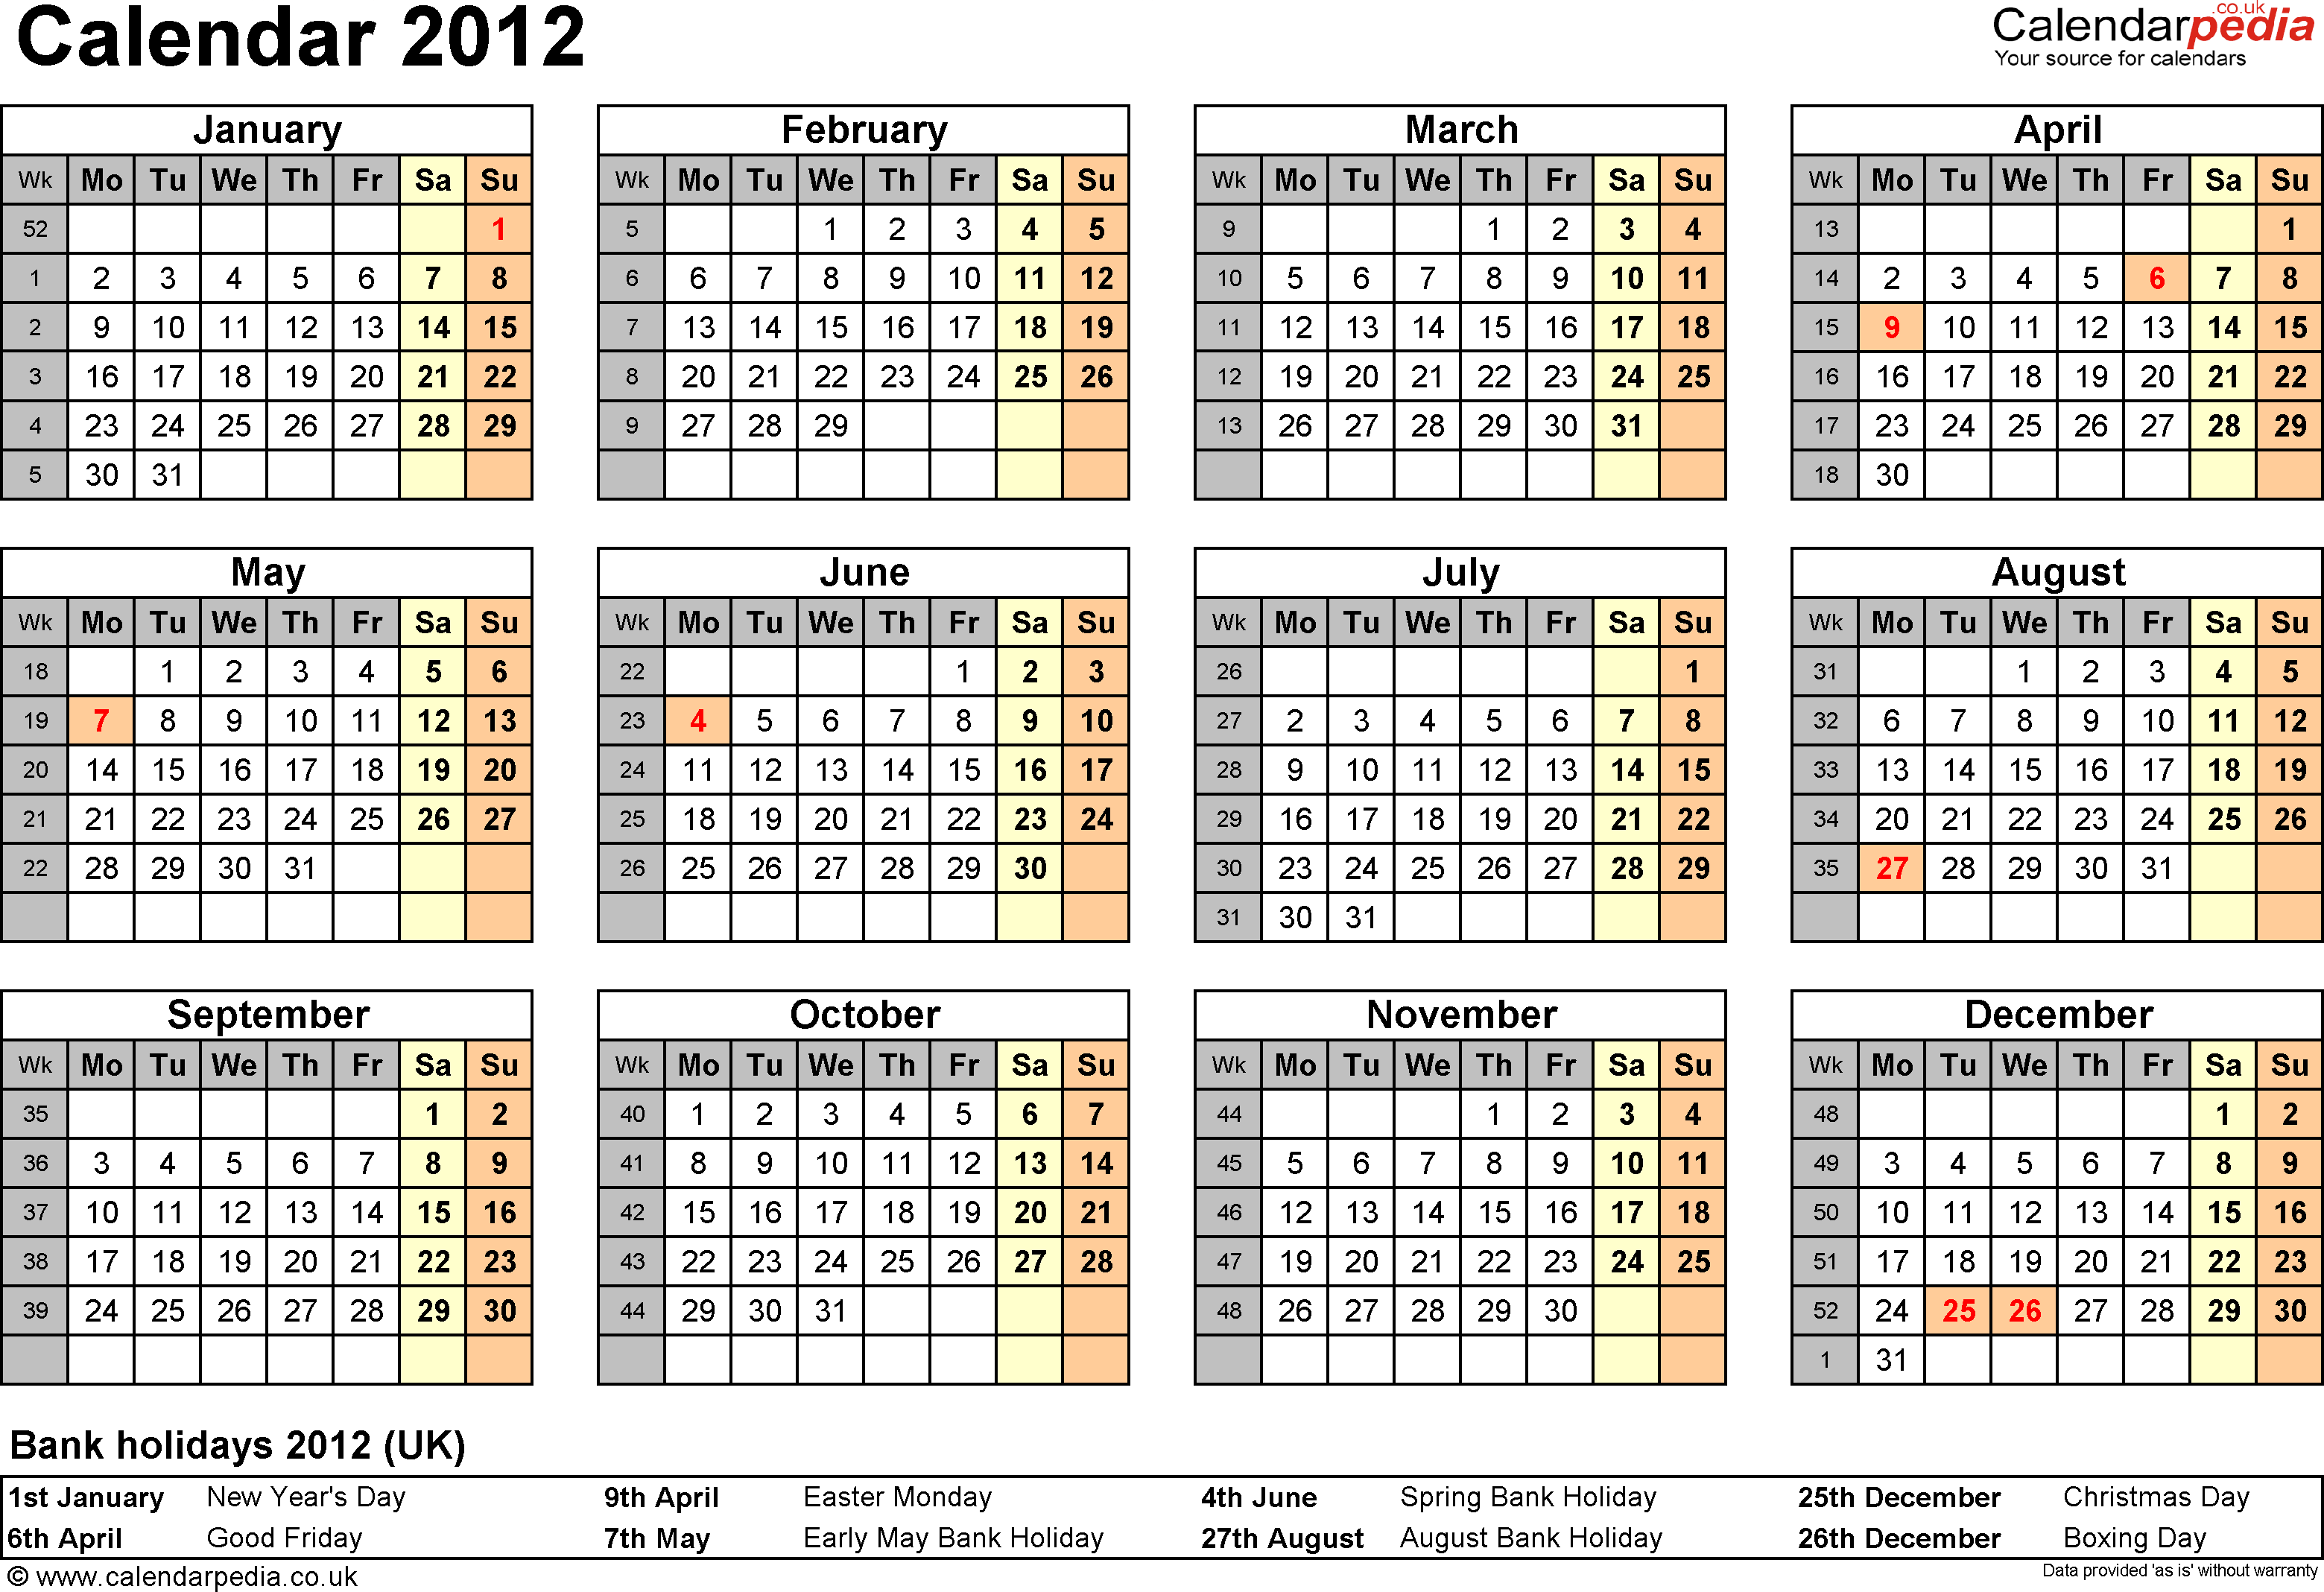 Template 7: Yearly calendar 2012 as Word template, year overview, 1 page